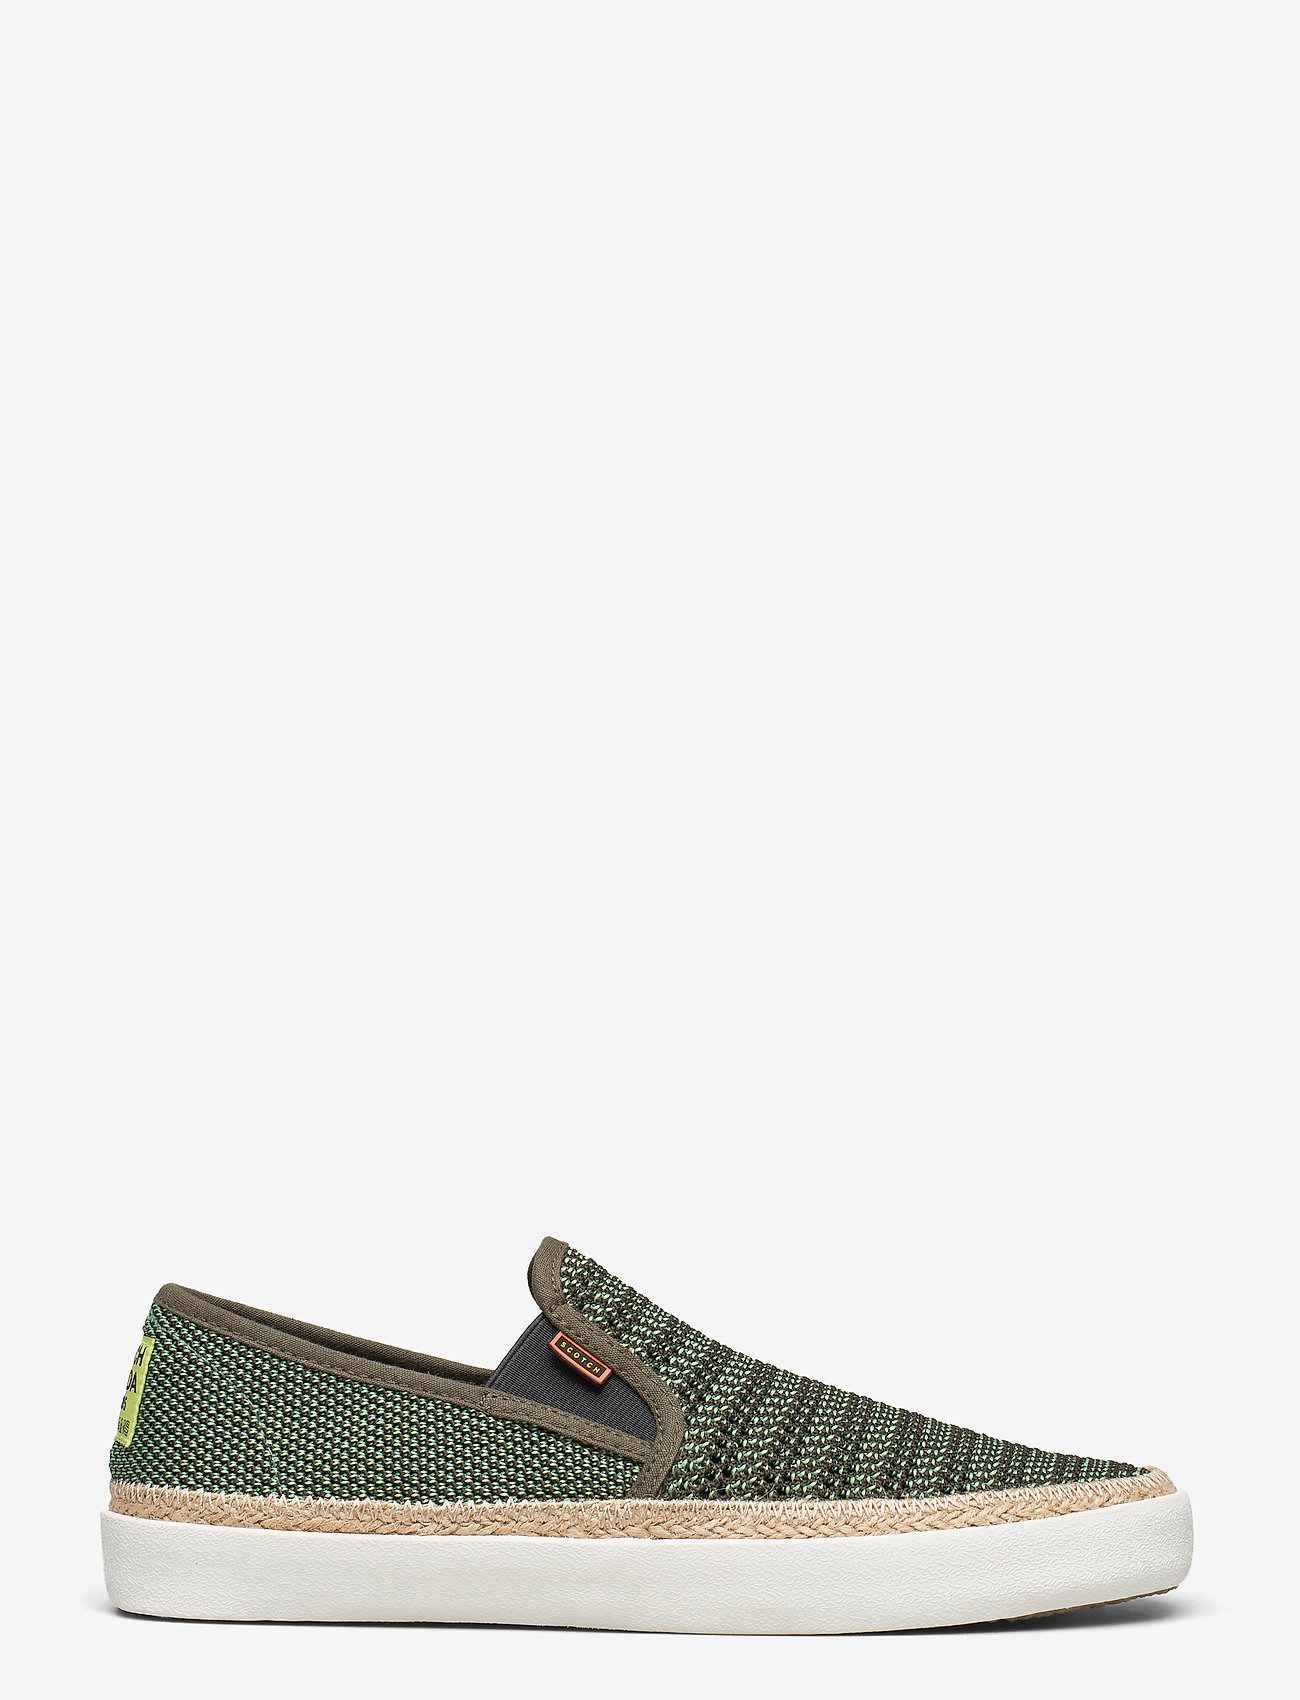 Scotch & Soda Shoes - Izomi Slip-on shoes - baskets slip-ons - military green - 1